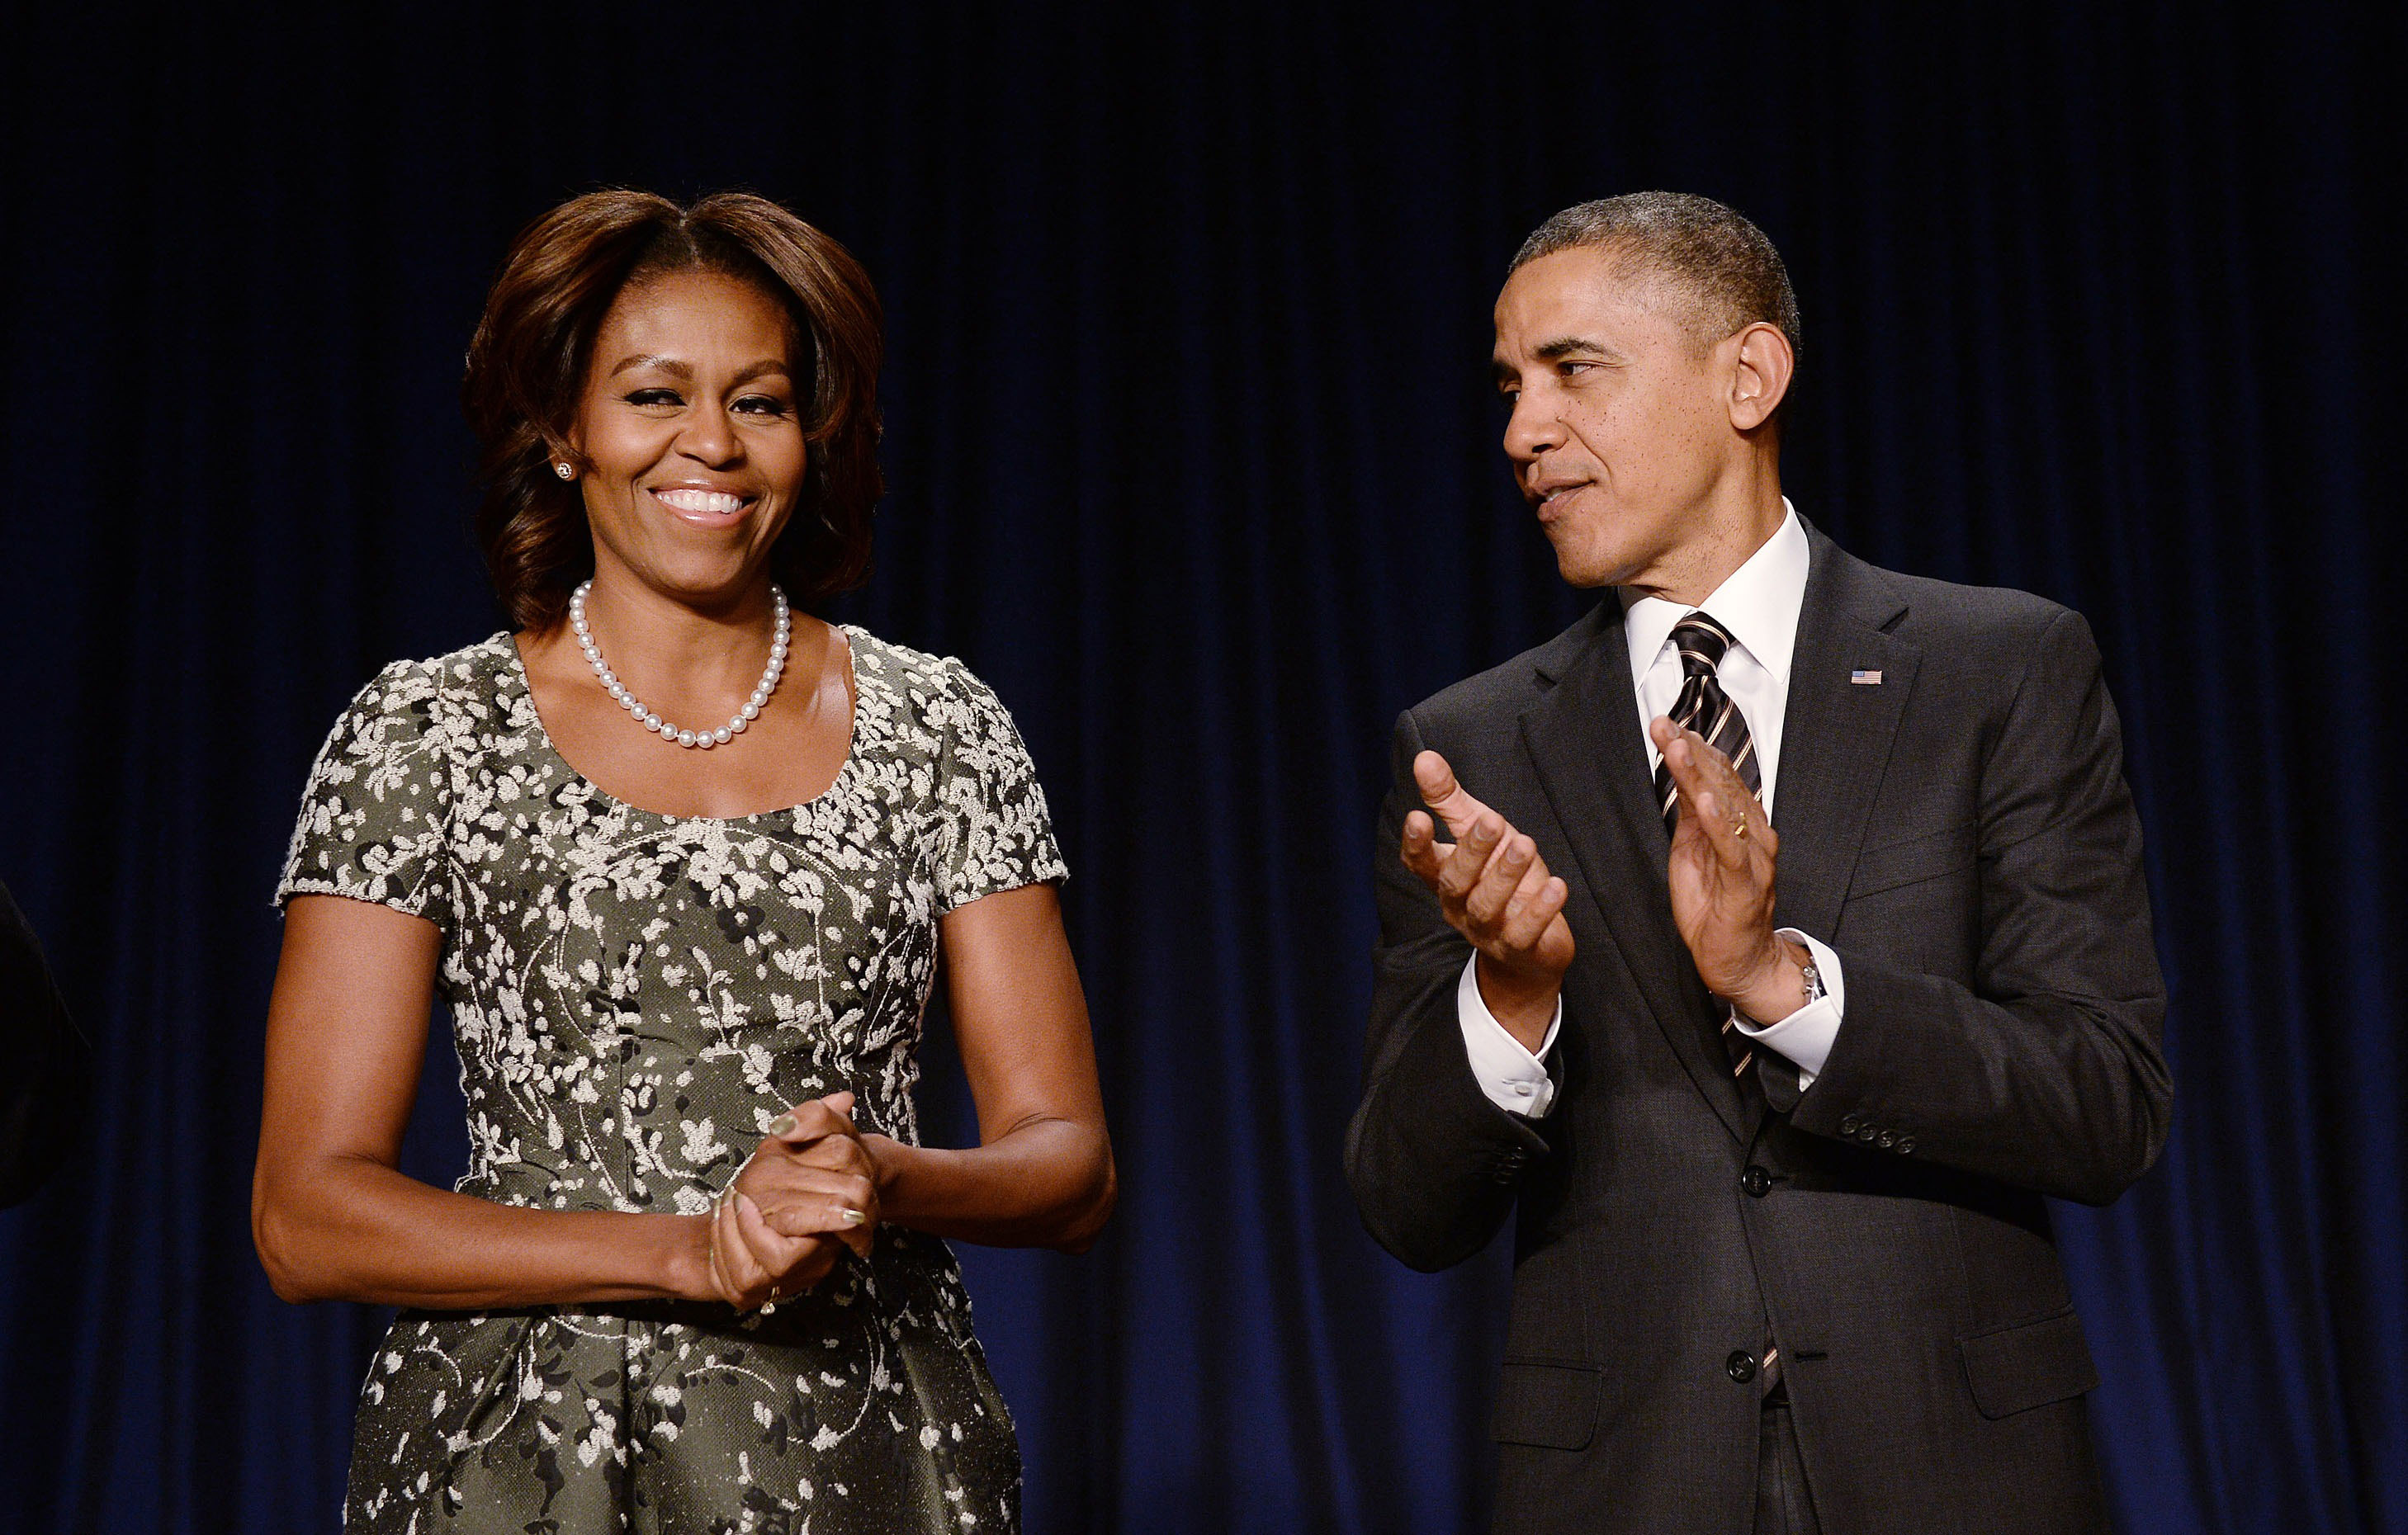 President Barack Obama and first lady Michelle Obama attend the National Prayer Breakfast at the Washington Hilton on Feb. 6, 2014 in Washington.